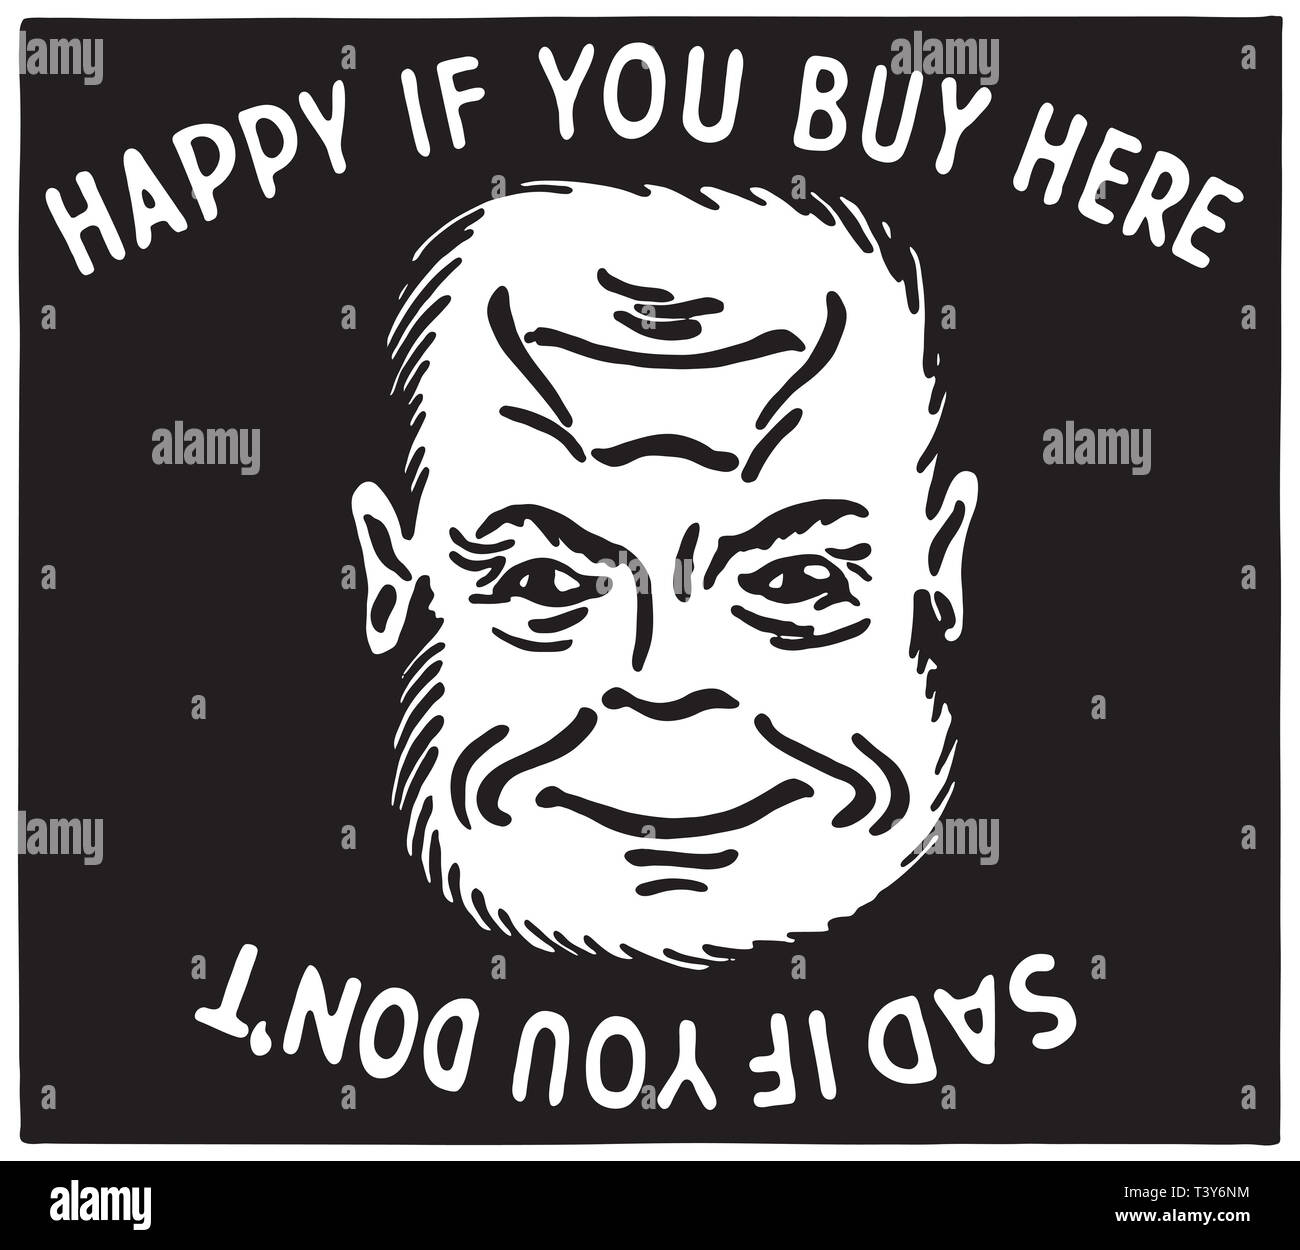 Happy If You Buy Here - Stock Image